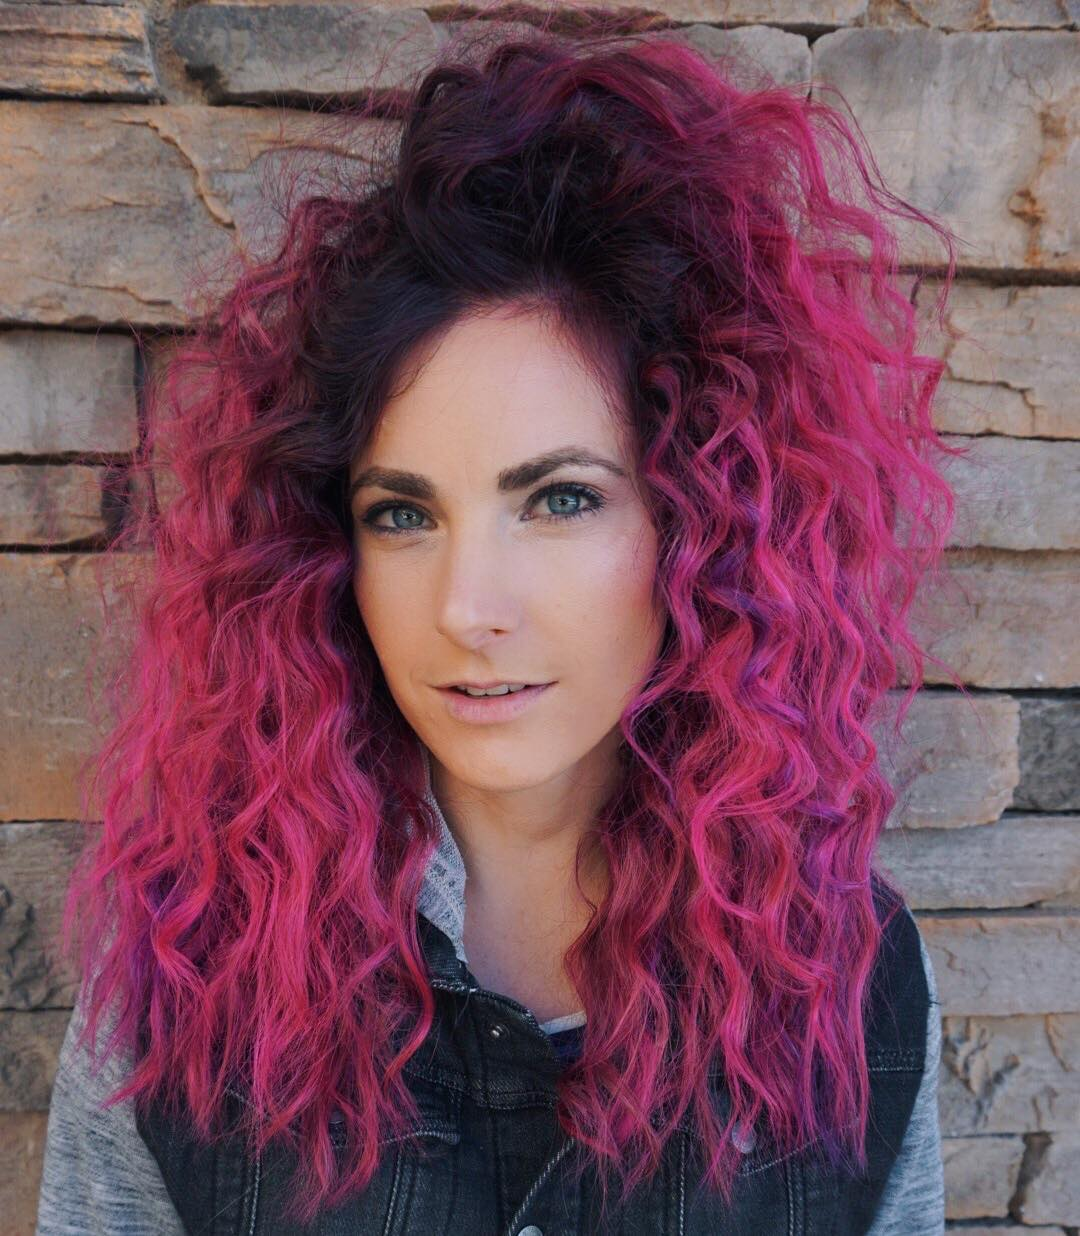 Undone Curly Texture on Seamless Layers with Vibrant Pink Ombre Long Hairstyle